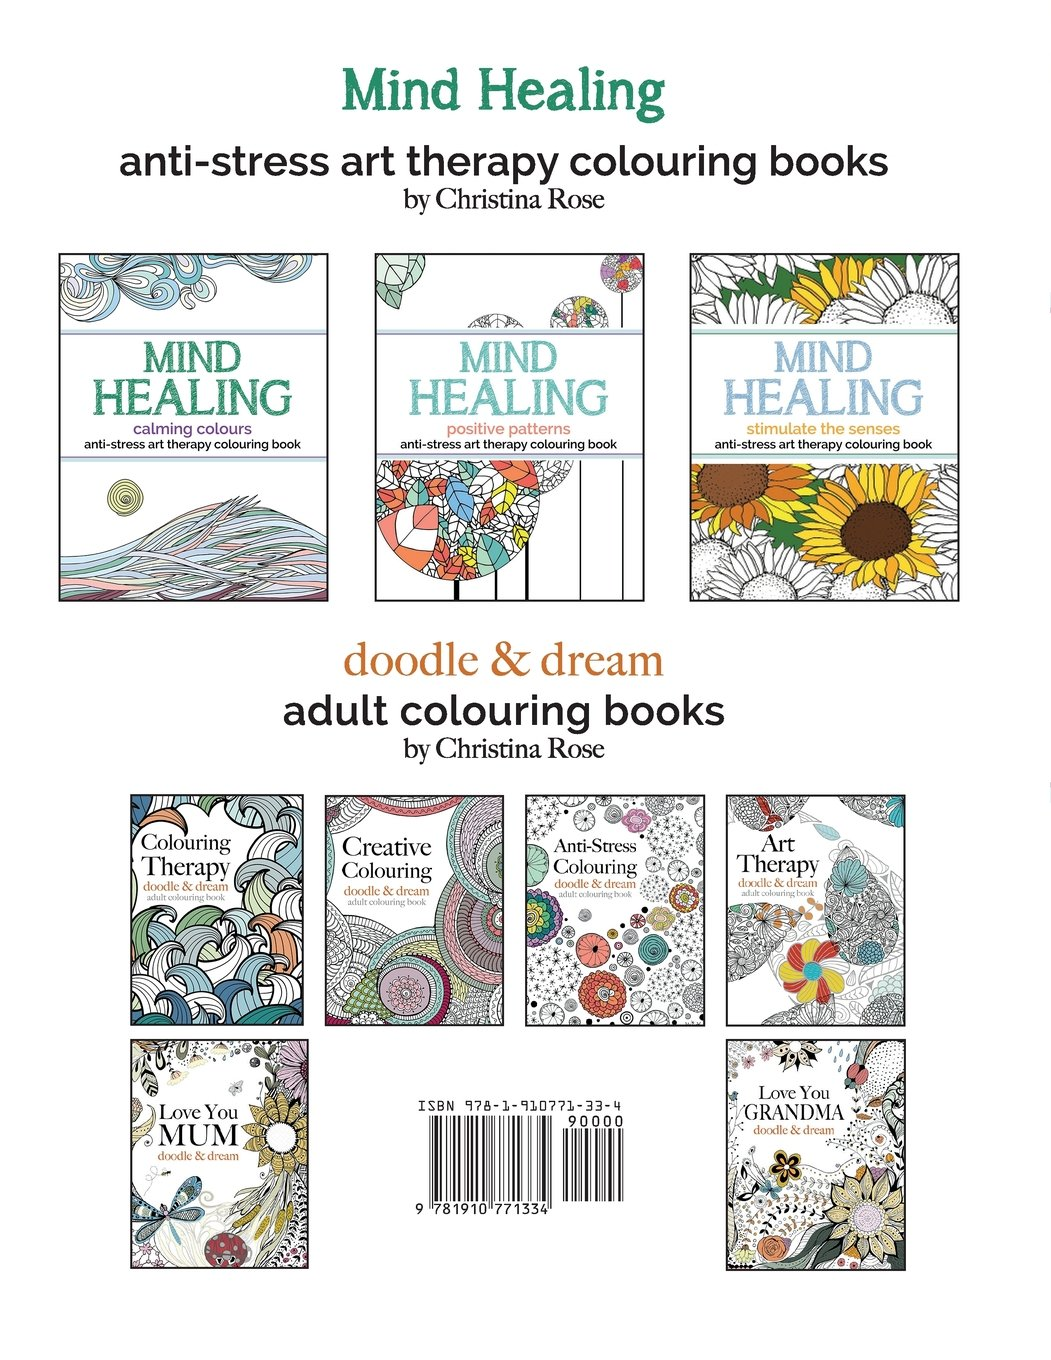 Creative anti stress colouring book - Mind Healing Anti Stress Art Therapy Colouring Book Positive Patterns Experience Relaxation And Stimulation Through Colouring Christina Rose